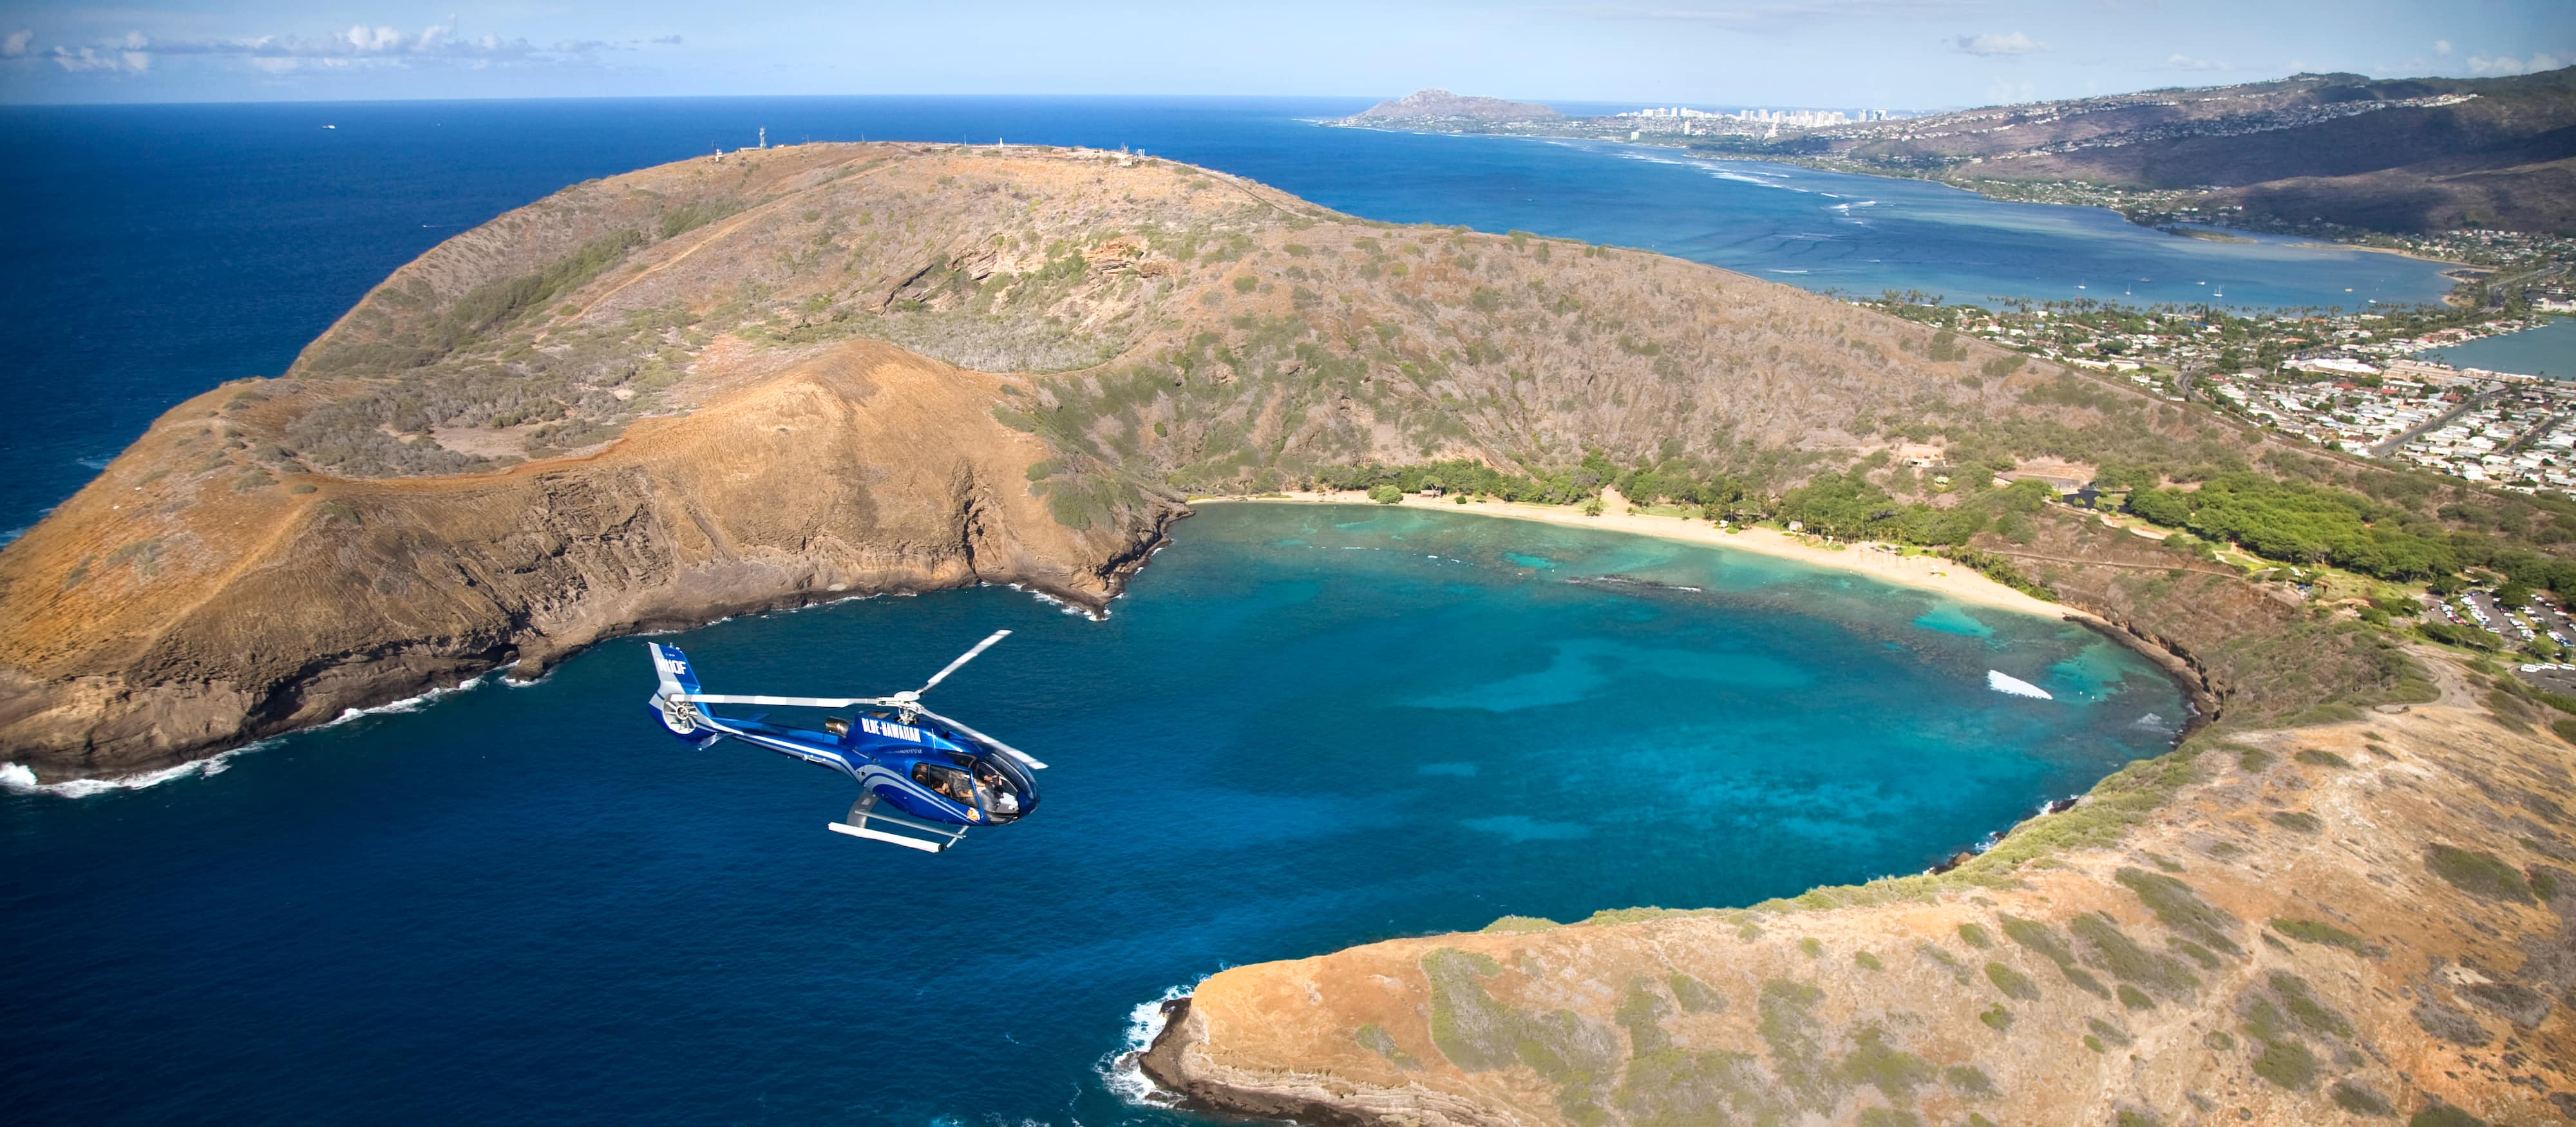 A helicopter flies over Hanauma Bay on the island of Oahu in the Hawaiian Islands